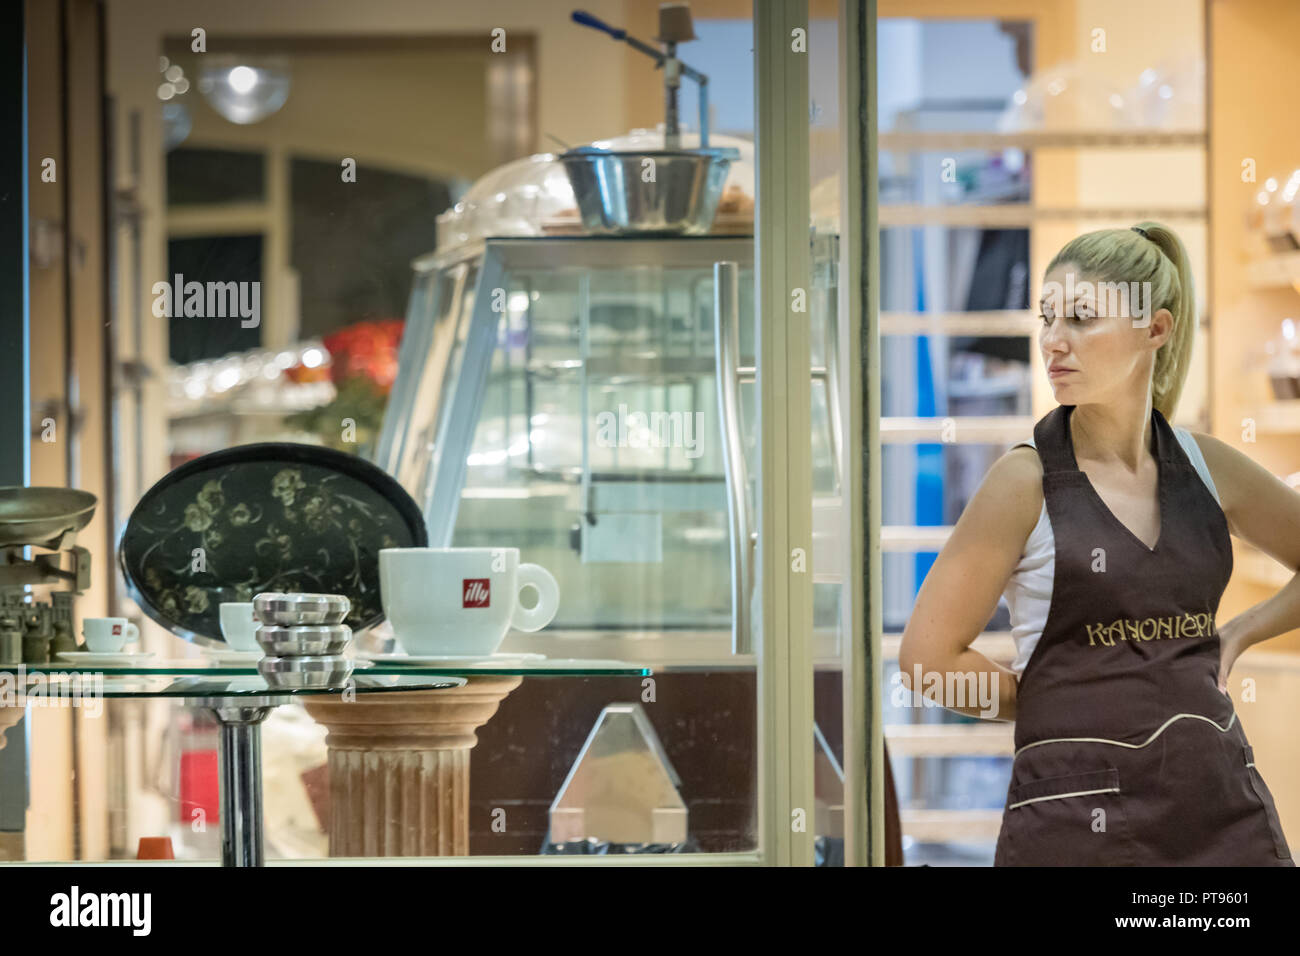 Pylos, Greece - October 2th, 2018: A  woman working in a bakery - pastry store is standing at the entrance outdoors looking away at the commercial cen - Stock Image